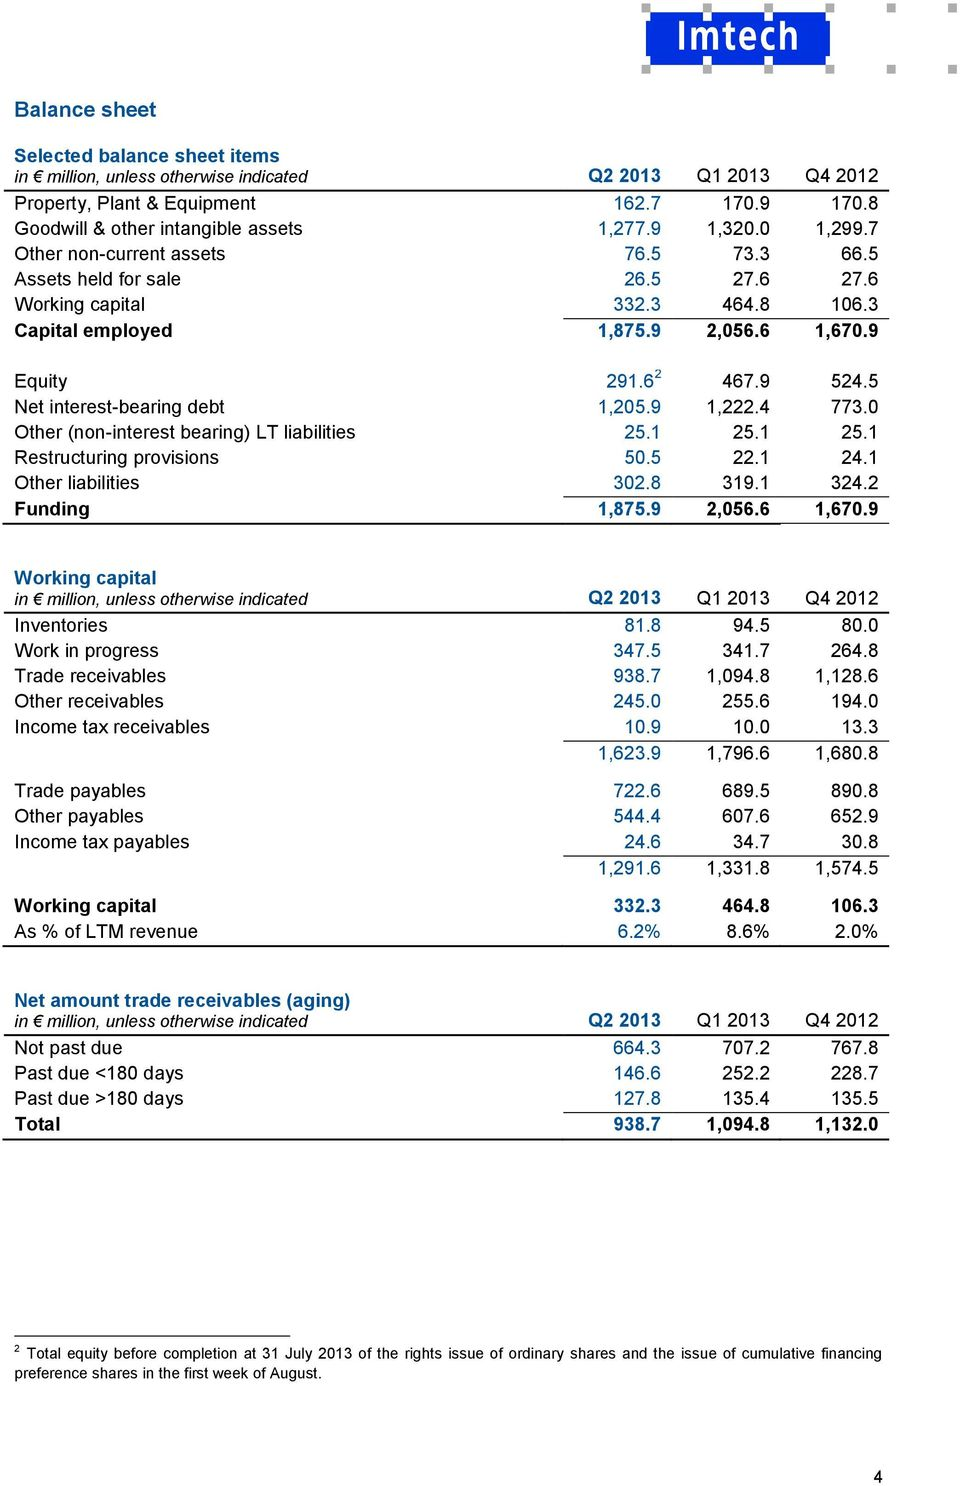 5 Net interest-bearing debt 1,205.9 1,222.4 773.0 Other (non-interest bearing) LT liabilities 25.1 25.1 25.1 Restructuring provisions 50.5 22.1 24.1 Other liabilities 302.8 319.1 324.2 Funding 1,875.